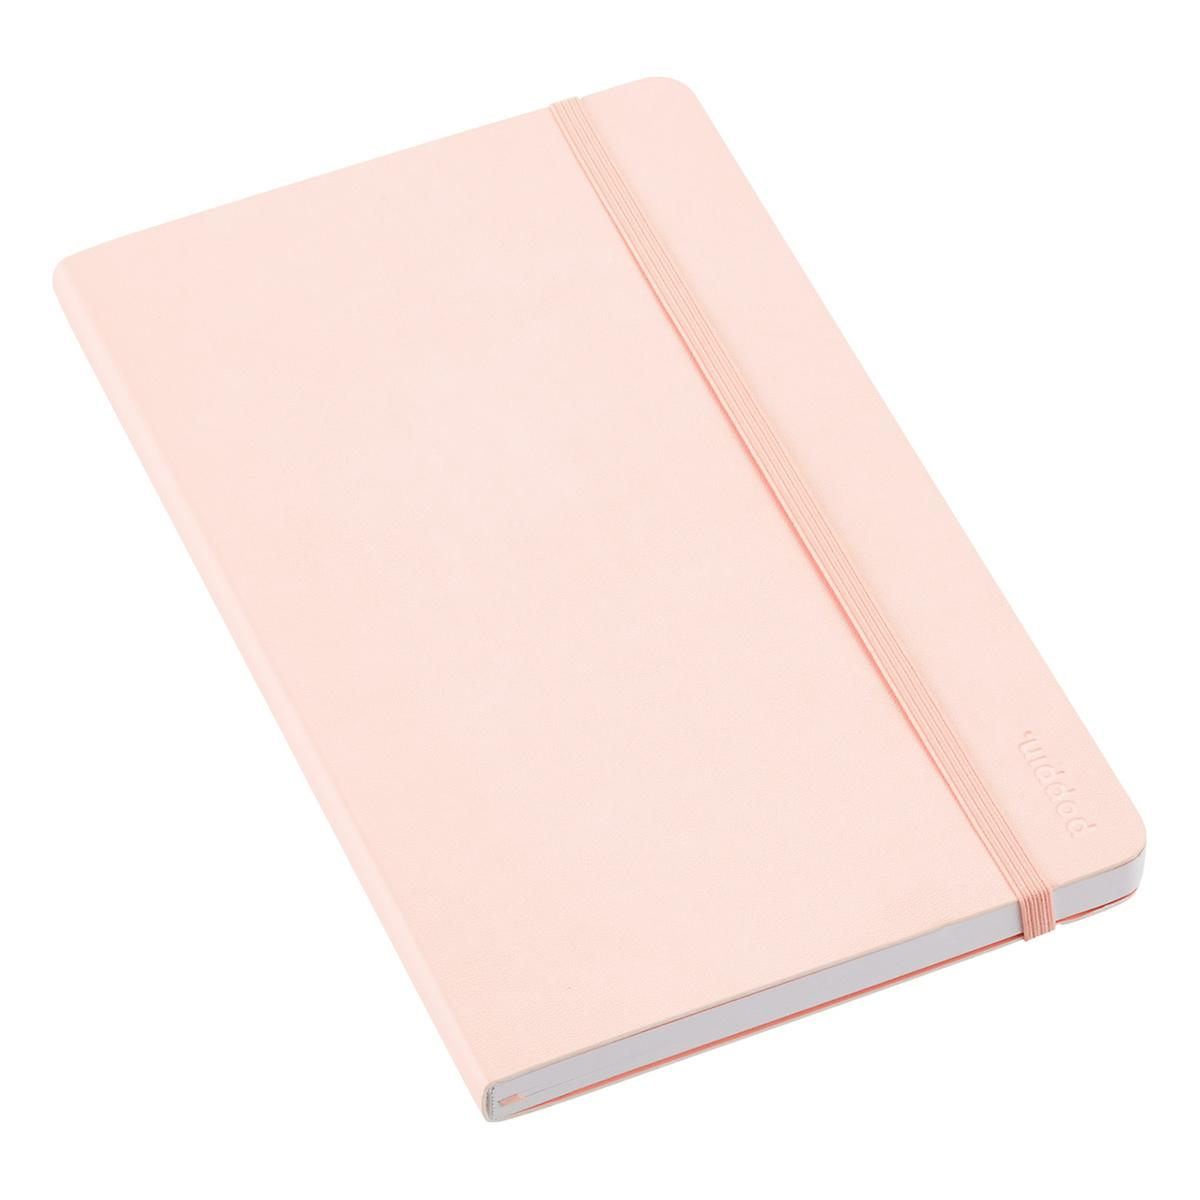 Poppin Medium Soft Cover Notebooks